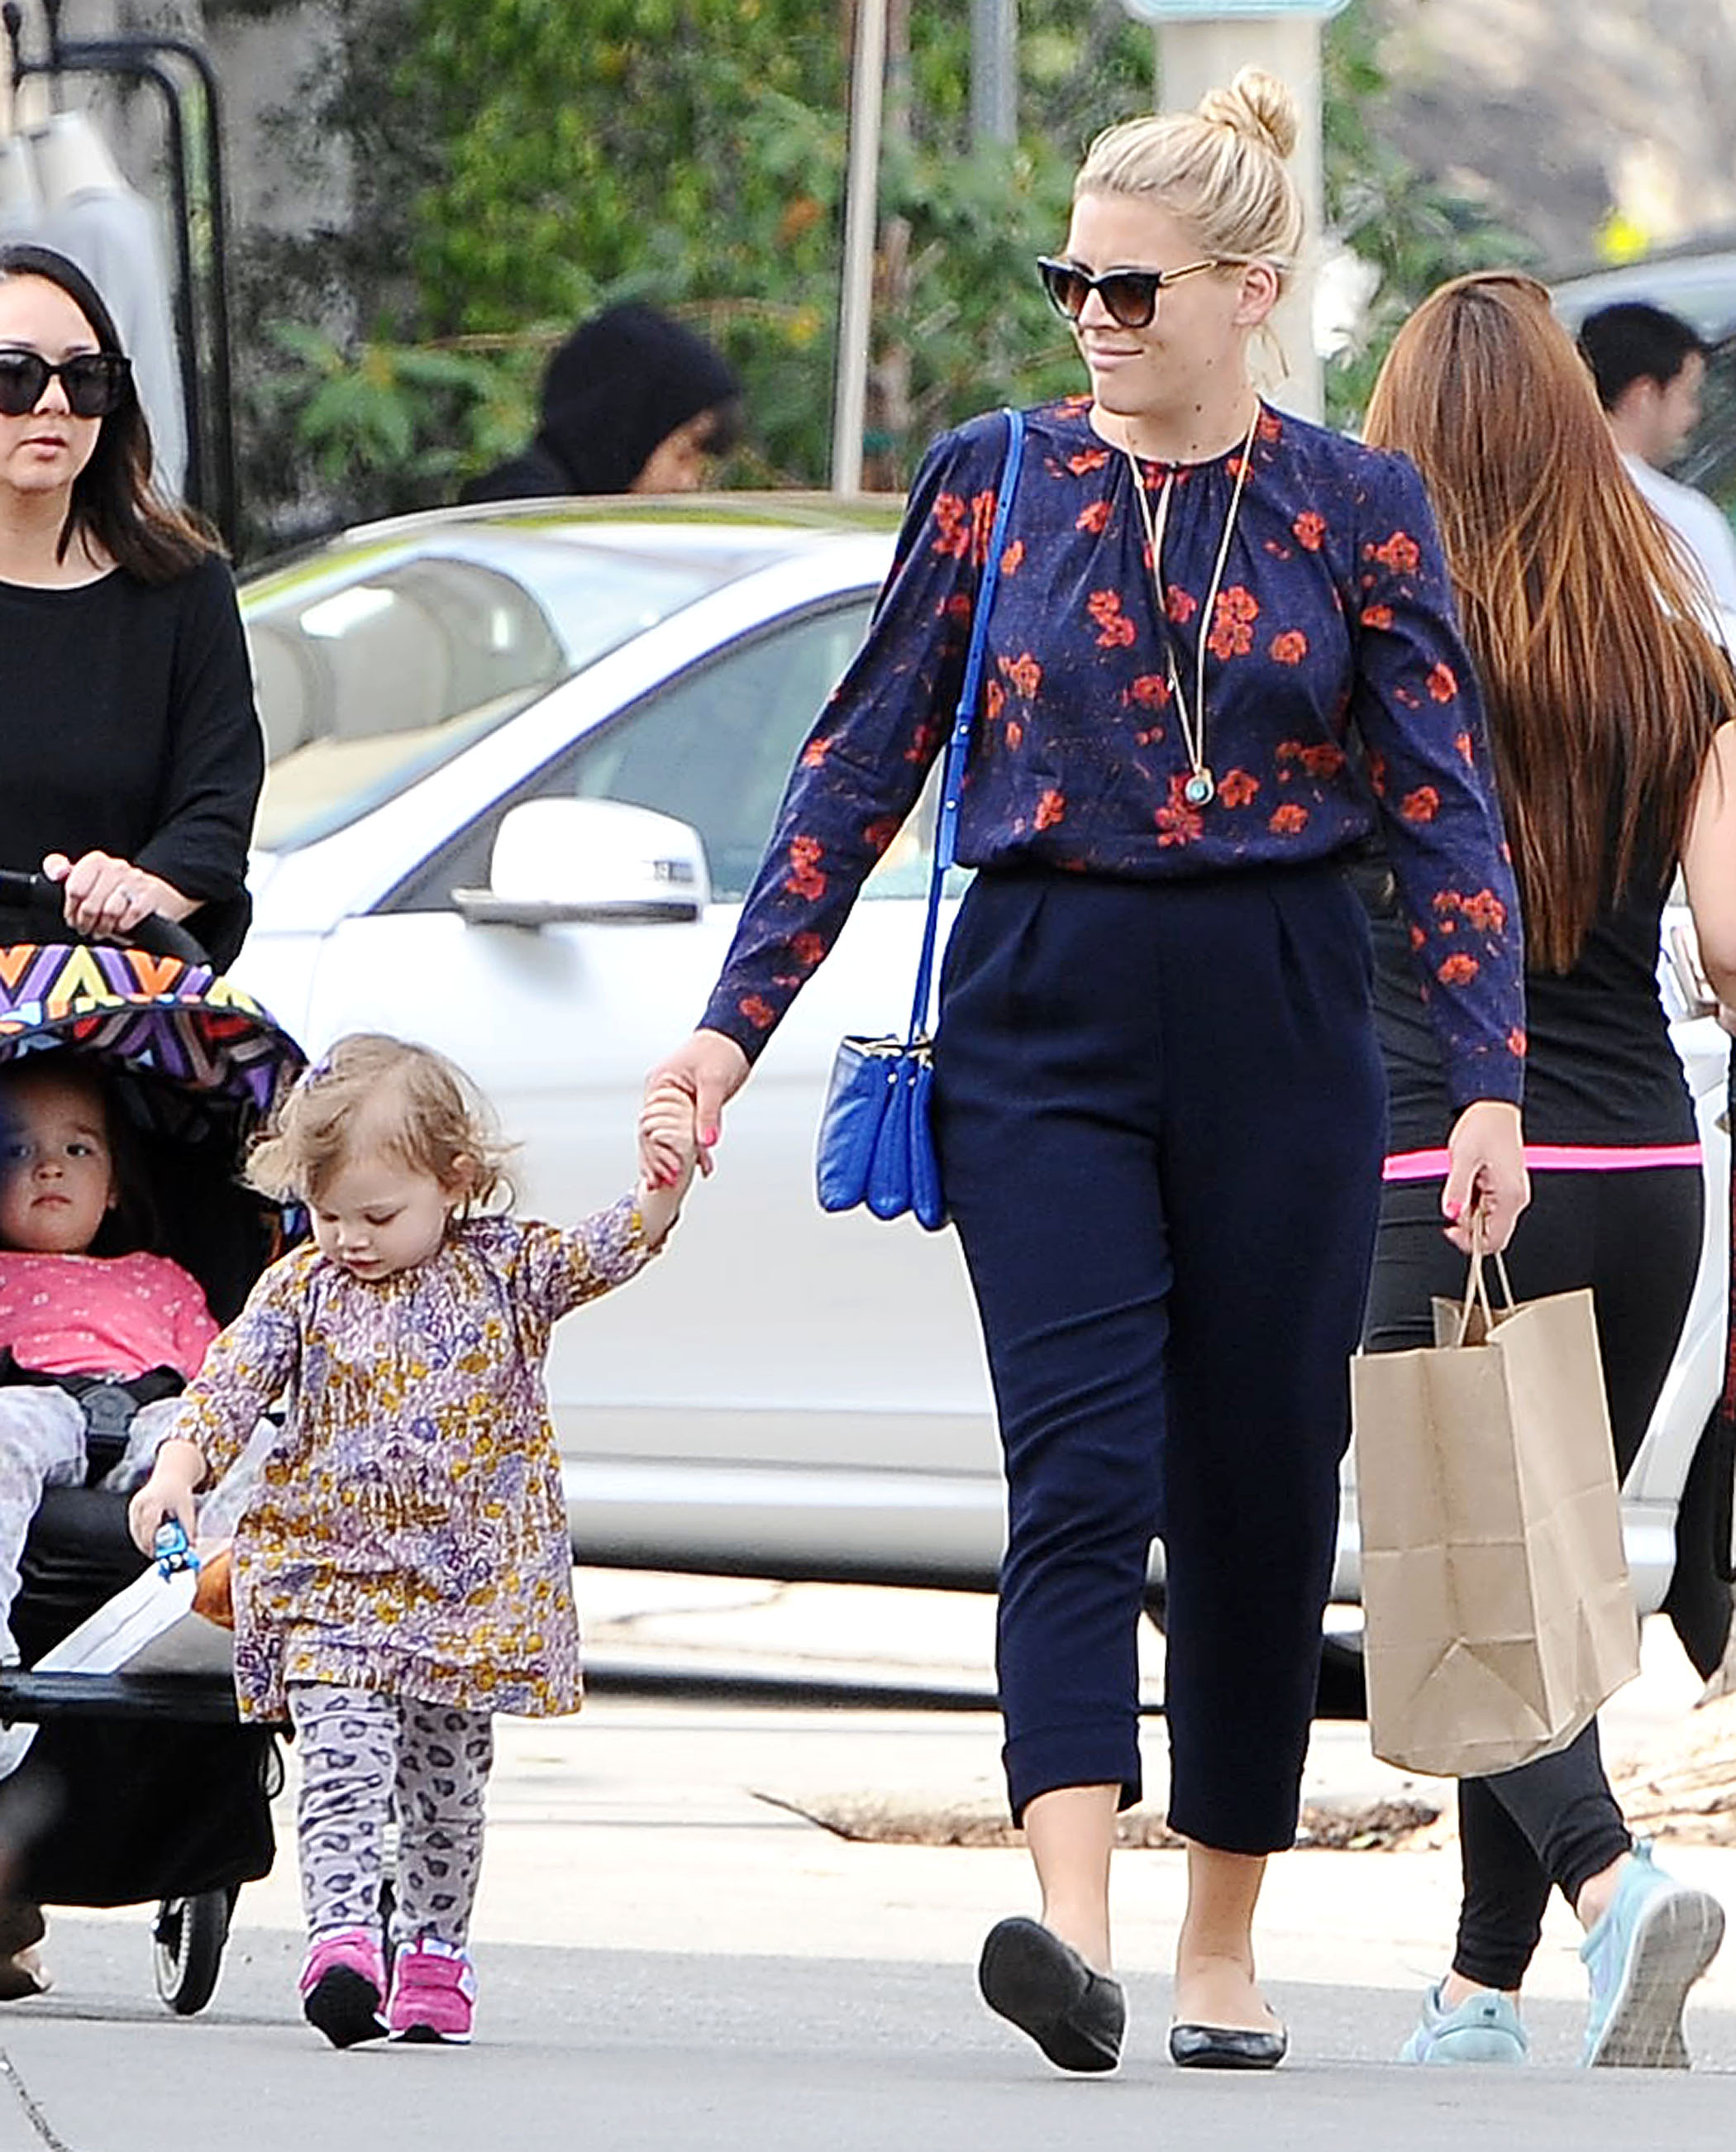 NO JUST JARED USAGE<BR/> ***NO DAILY MAIL SALES*** Busy Philipps and daughter Birdie Leigh Silverstein out and about in Los Angeles. <P> Pictured: Busy Philipps and Birdie Leigh Silverstein <B>Ref: SPL963758  260215  </B><BR/> Picture by: Splash News<BR/> </P><P> <B>Splash News and Pictures</B><BR/> Los Angeles:310-821-2666<BR/> New York:212-619-2666<BR/> London:870-934-2666<BR/> <span id=